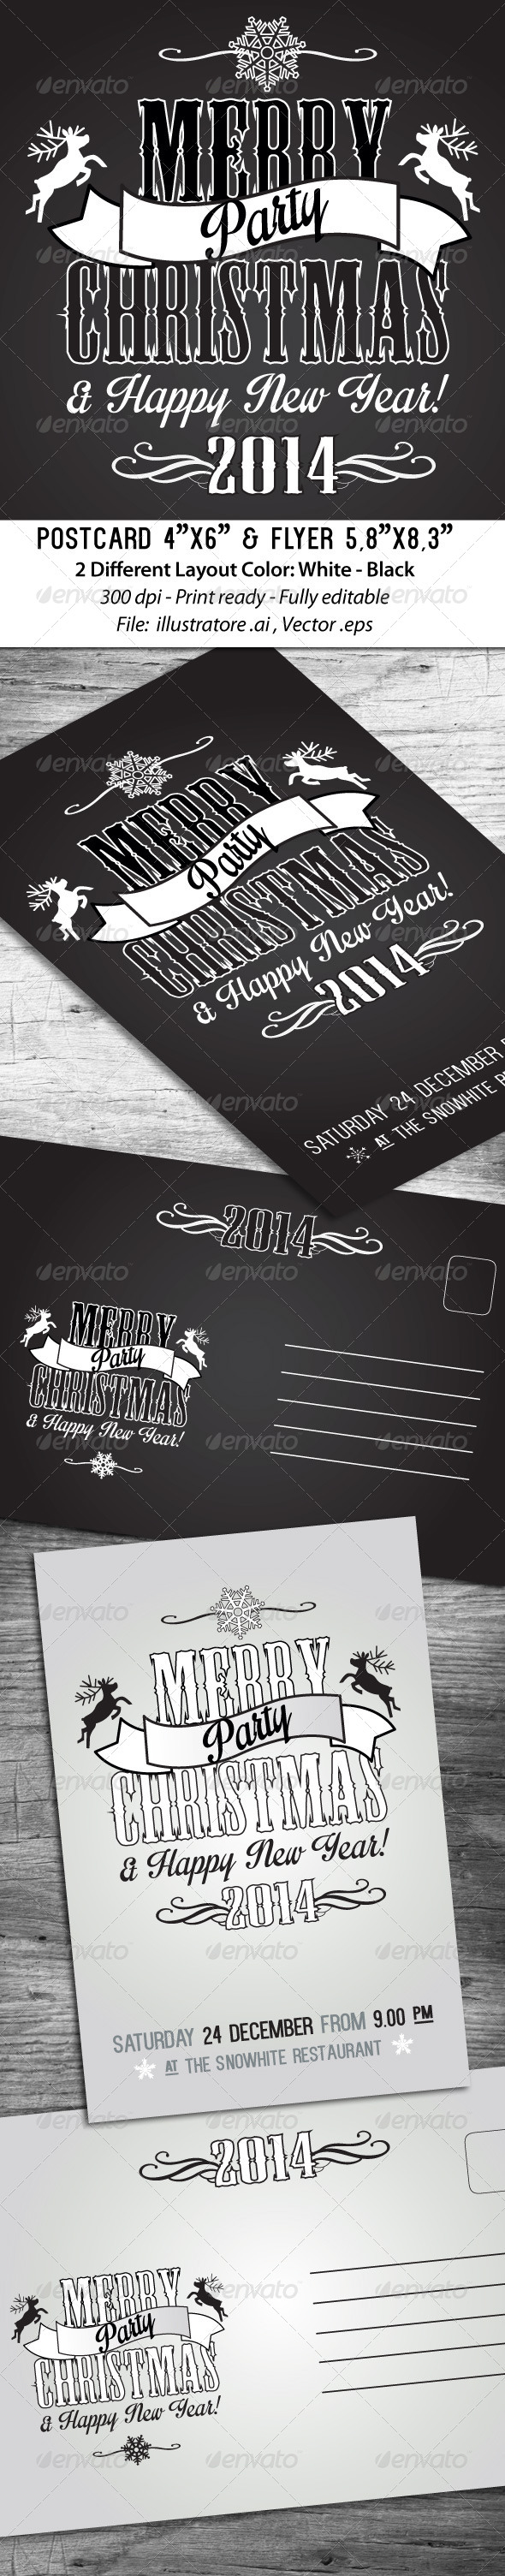 GraphicRiver Merry Christmas Invites & Flyers 6159284